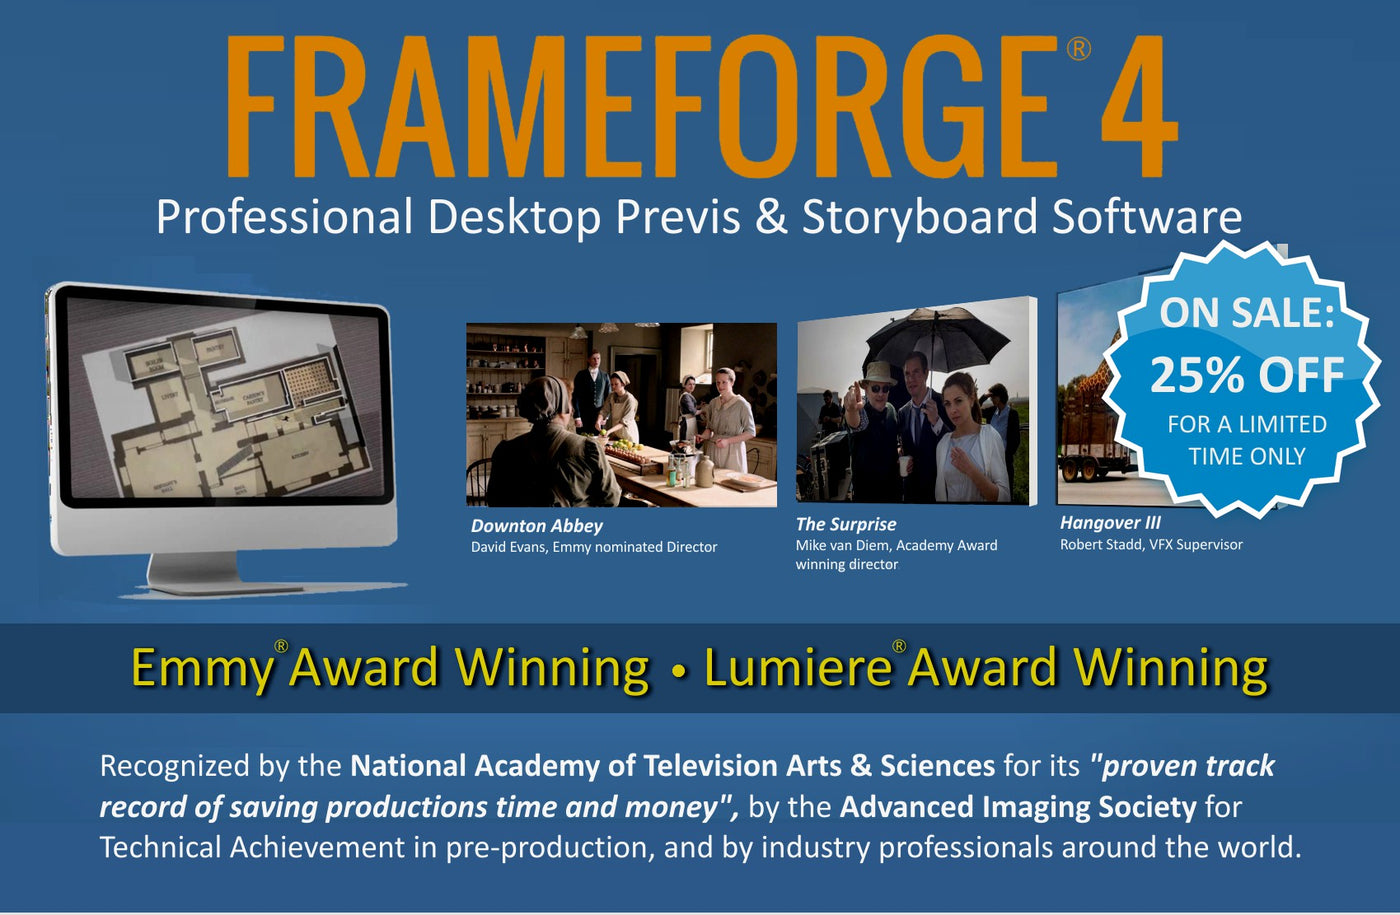 frameforge is used on your favorite films and tv shows